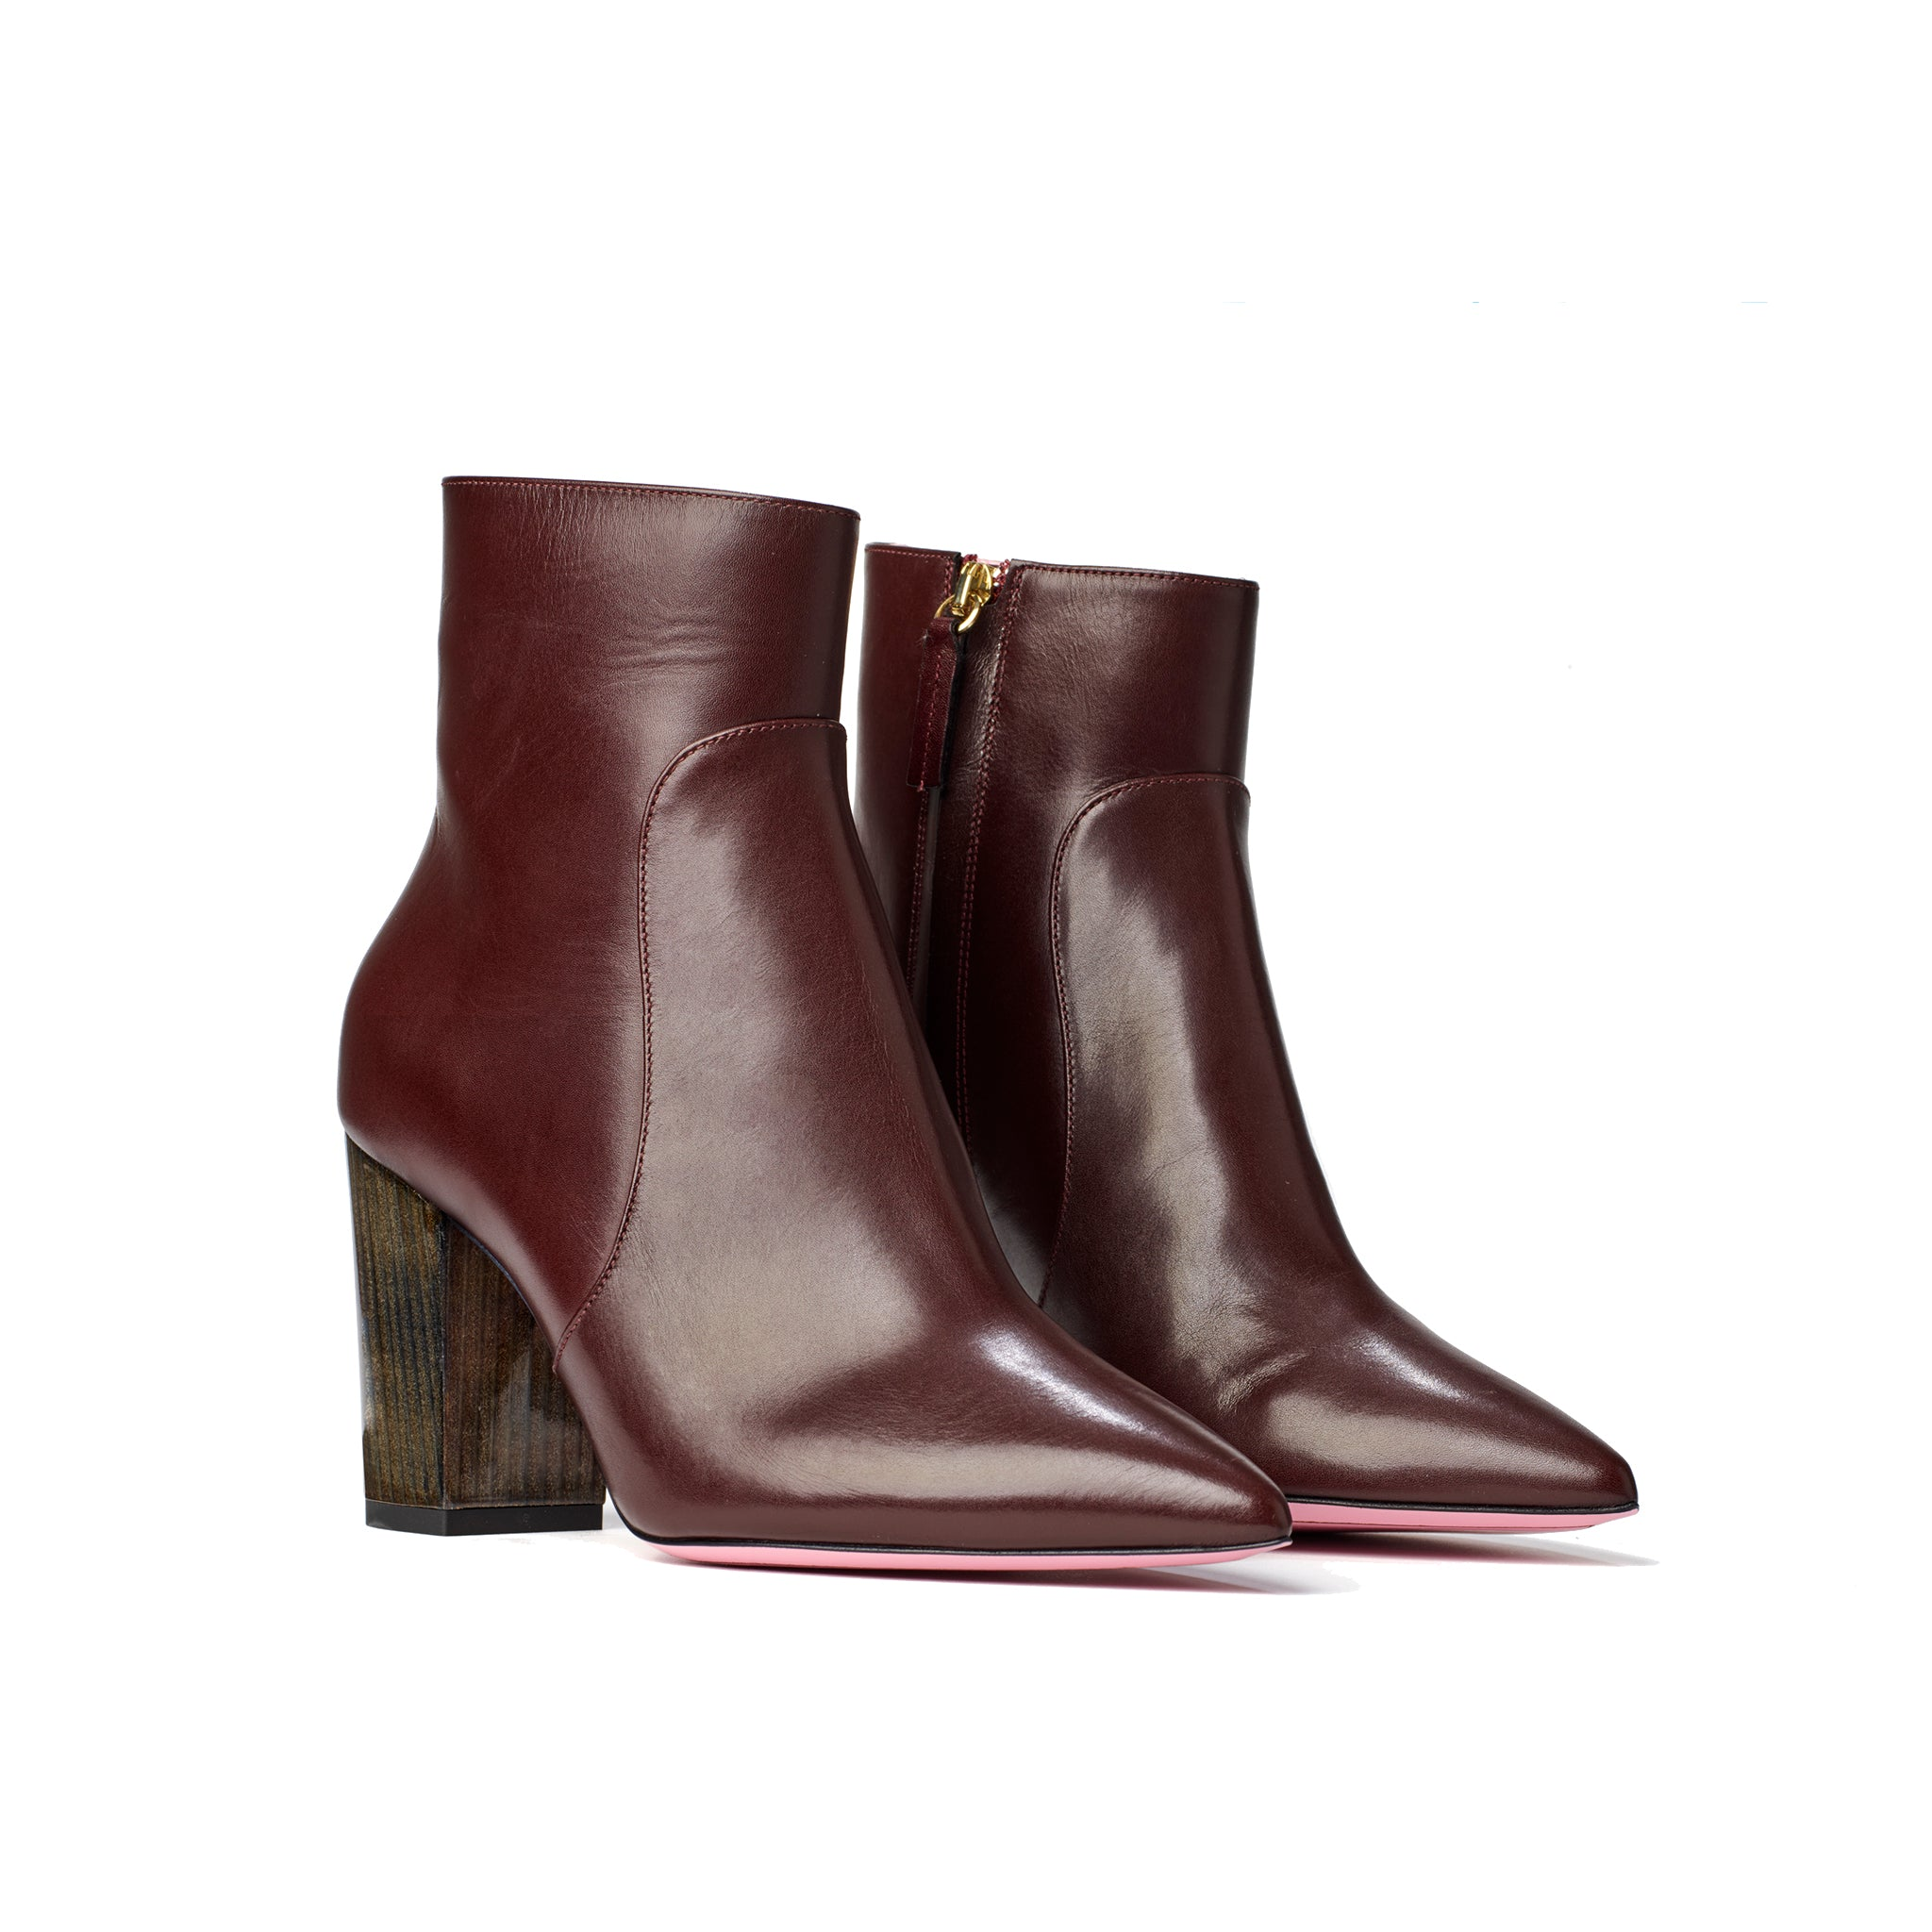 Phare Pointed block heel boot in bordeaux leather made in Italy 3/4 view